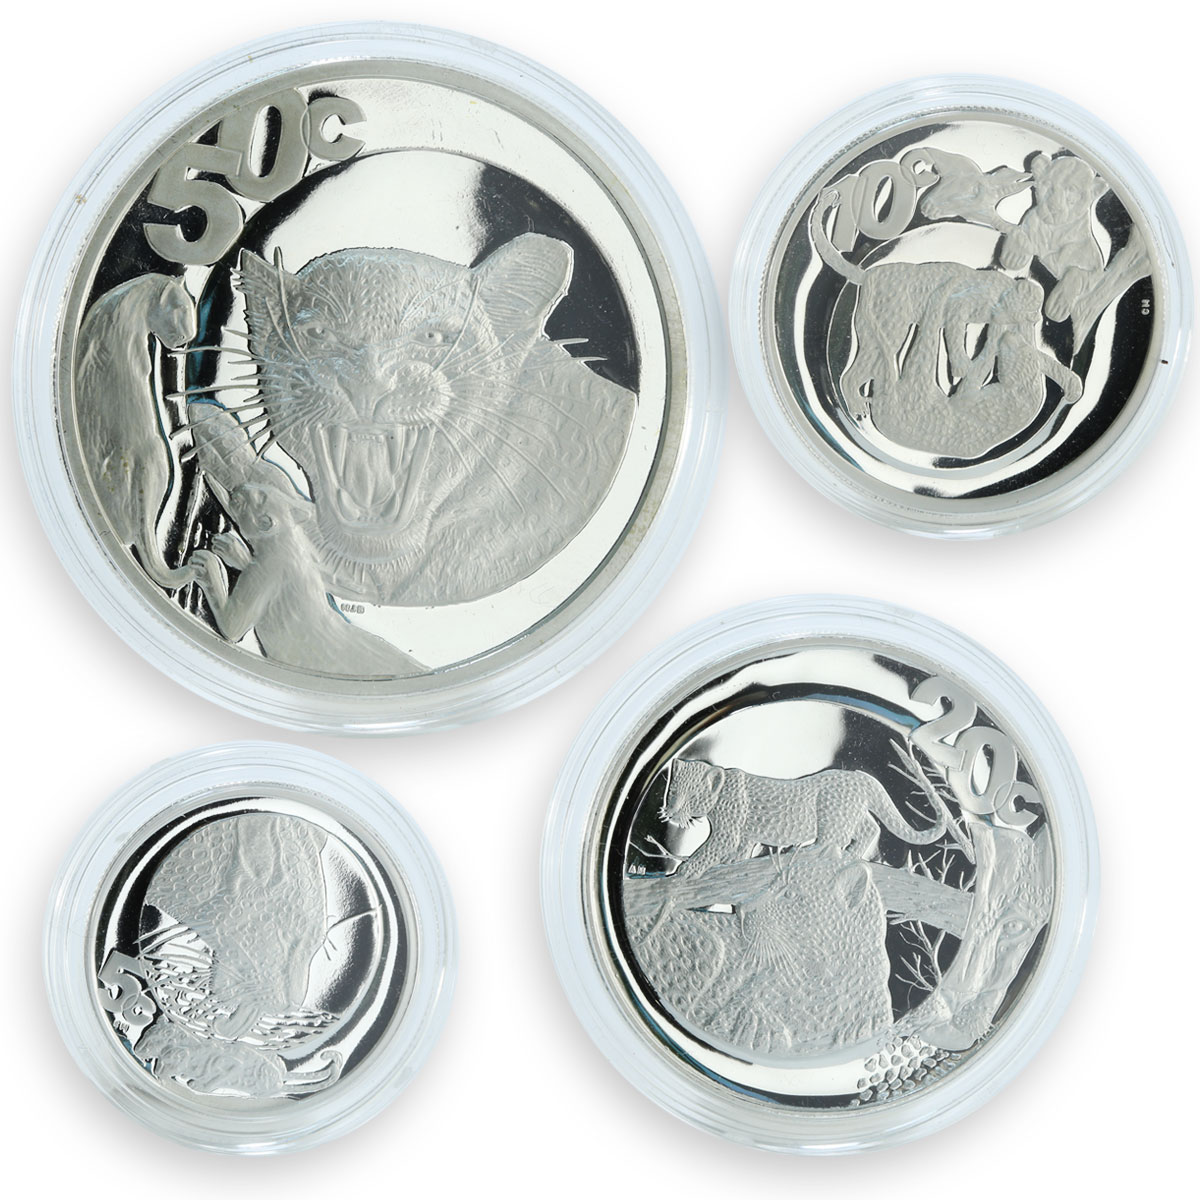 South Africa set 4 coins 50,20,10,5 cents Wildlife The Leopard proof silver 2004